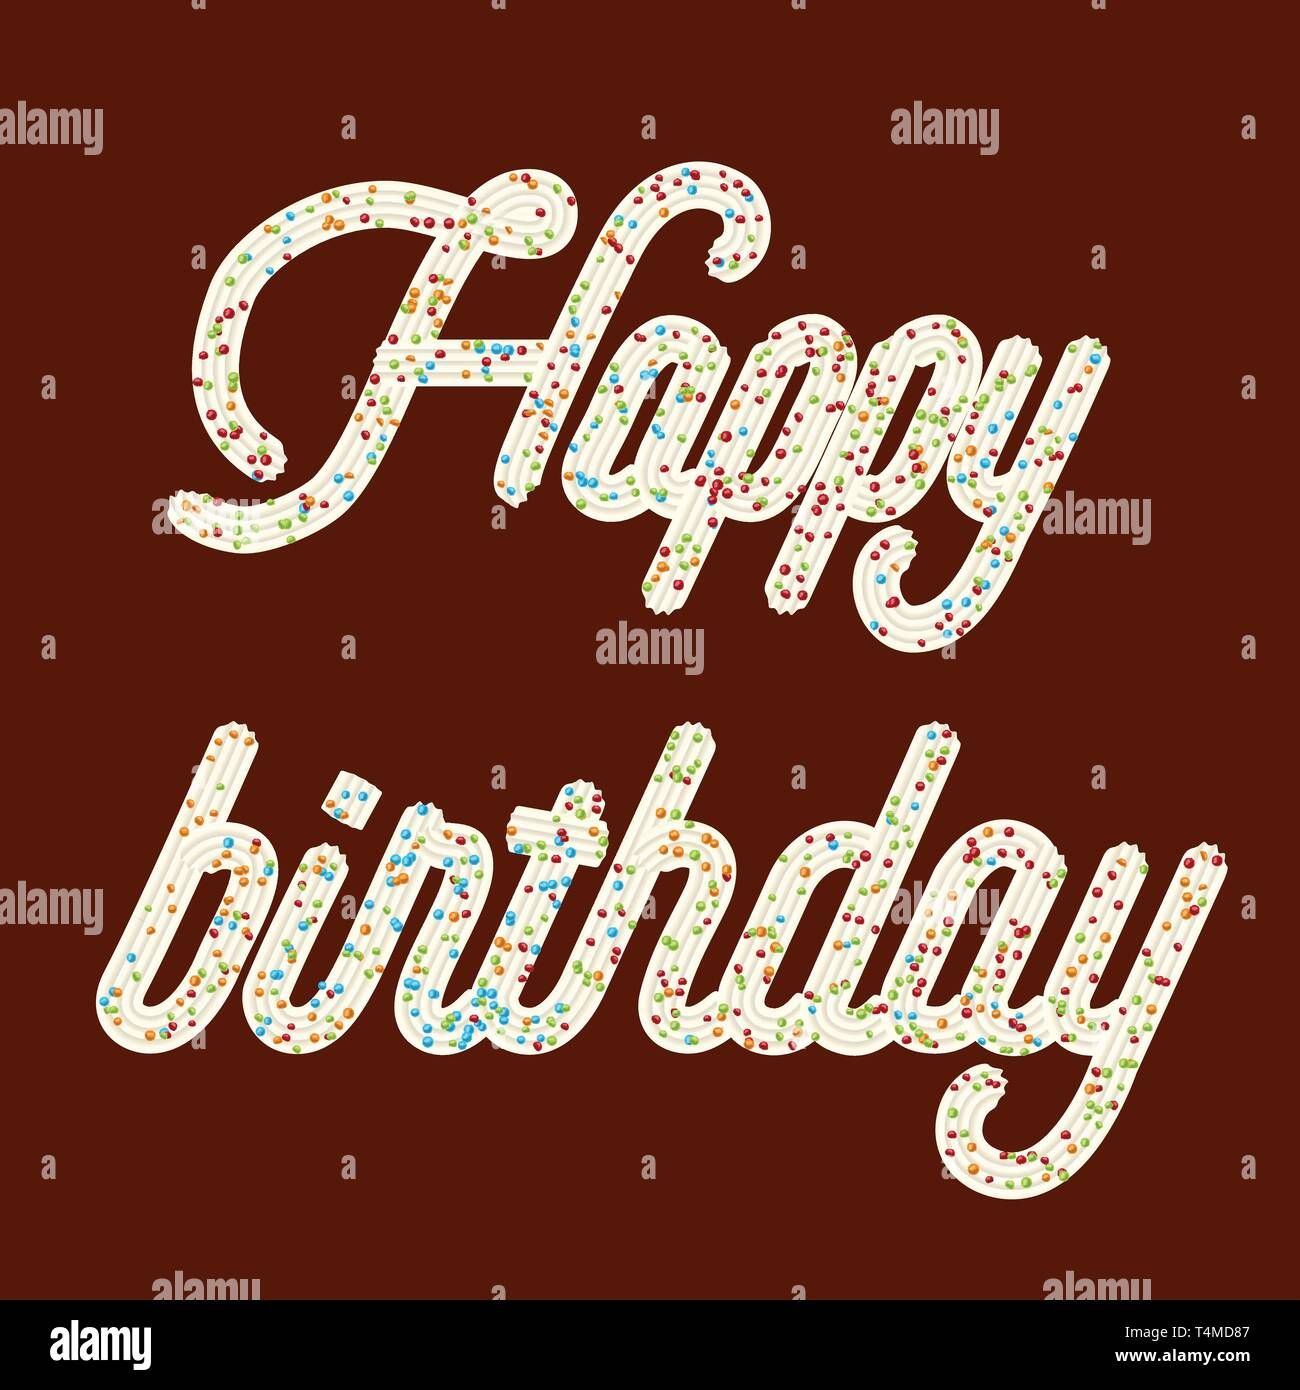 Tempting  typography. Icing text. 'Happy birthday' whipped cream text glazed with candy. Vector. - Stock Image